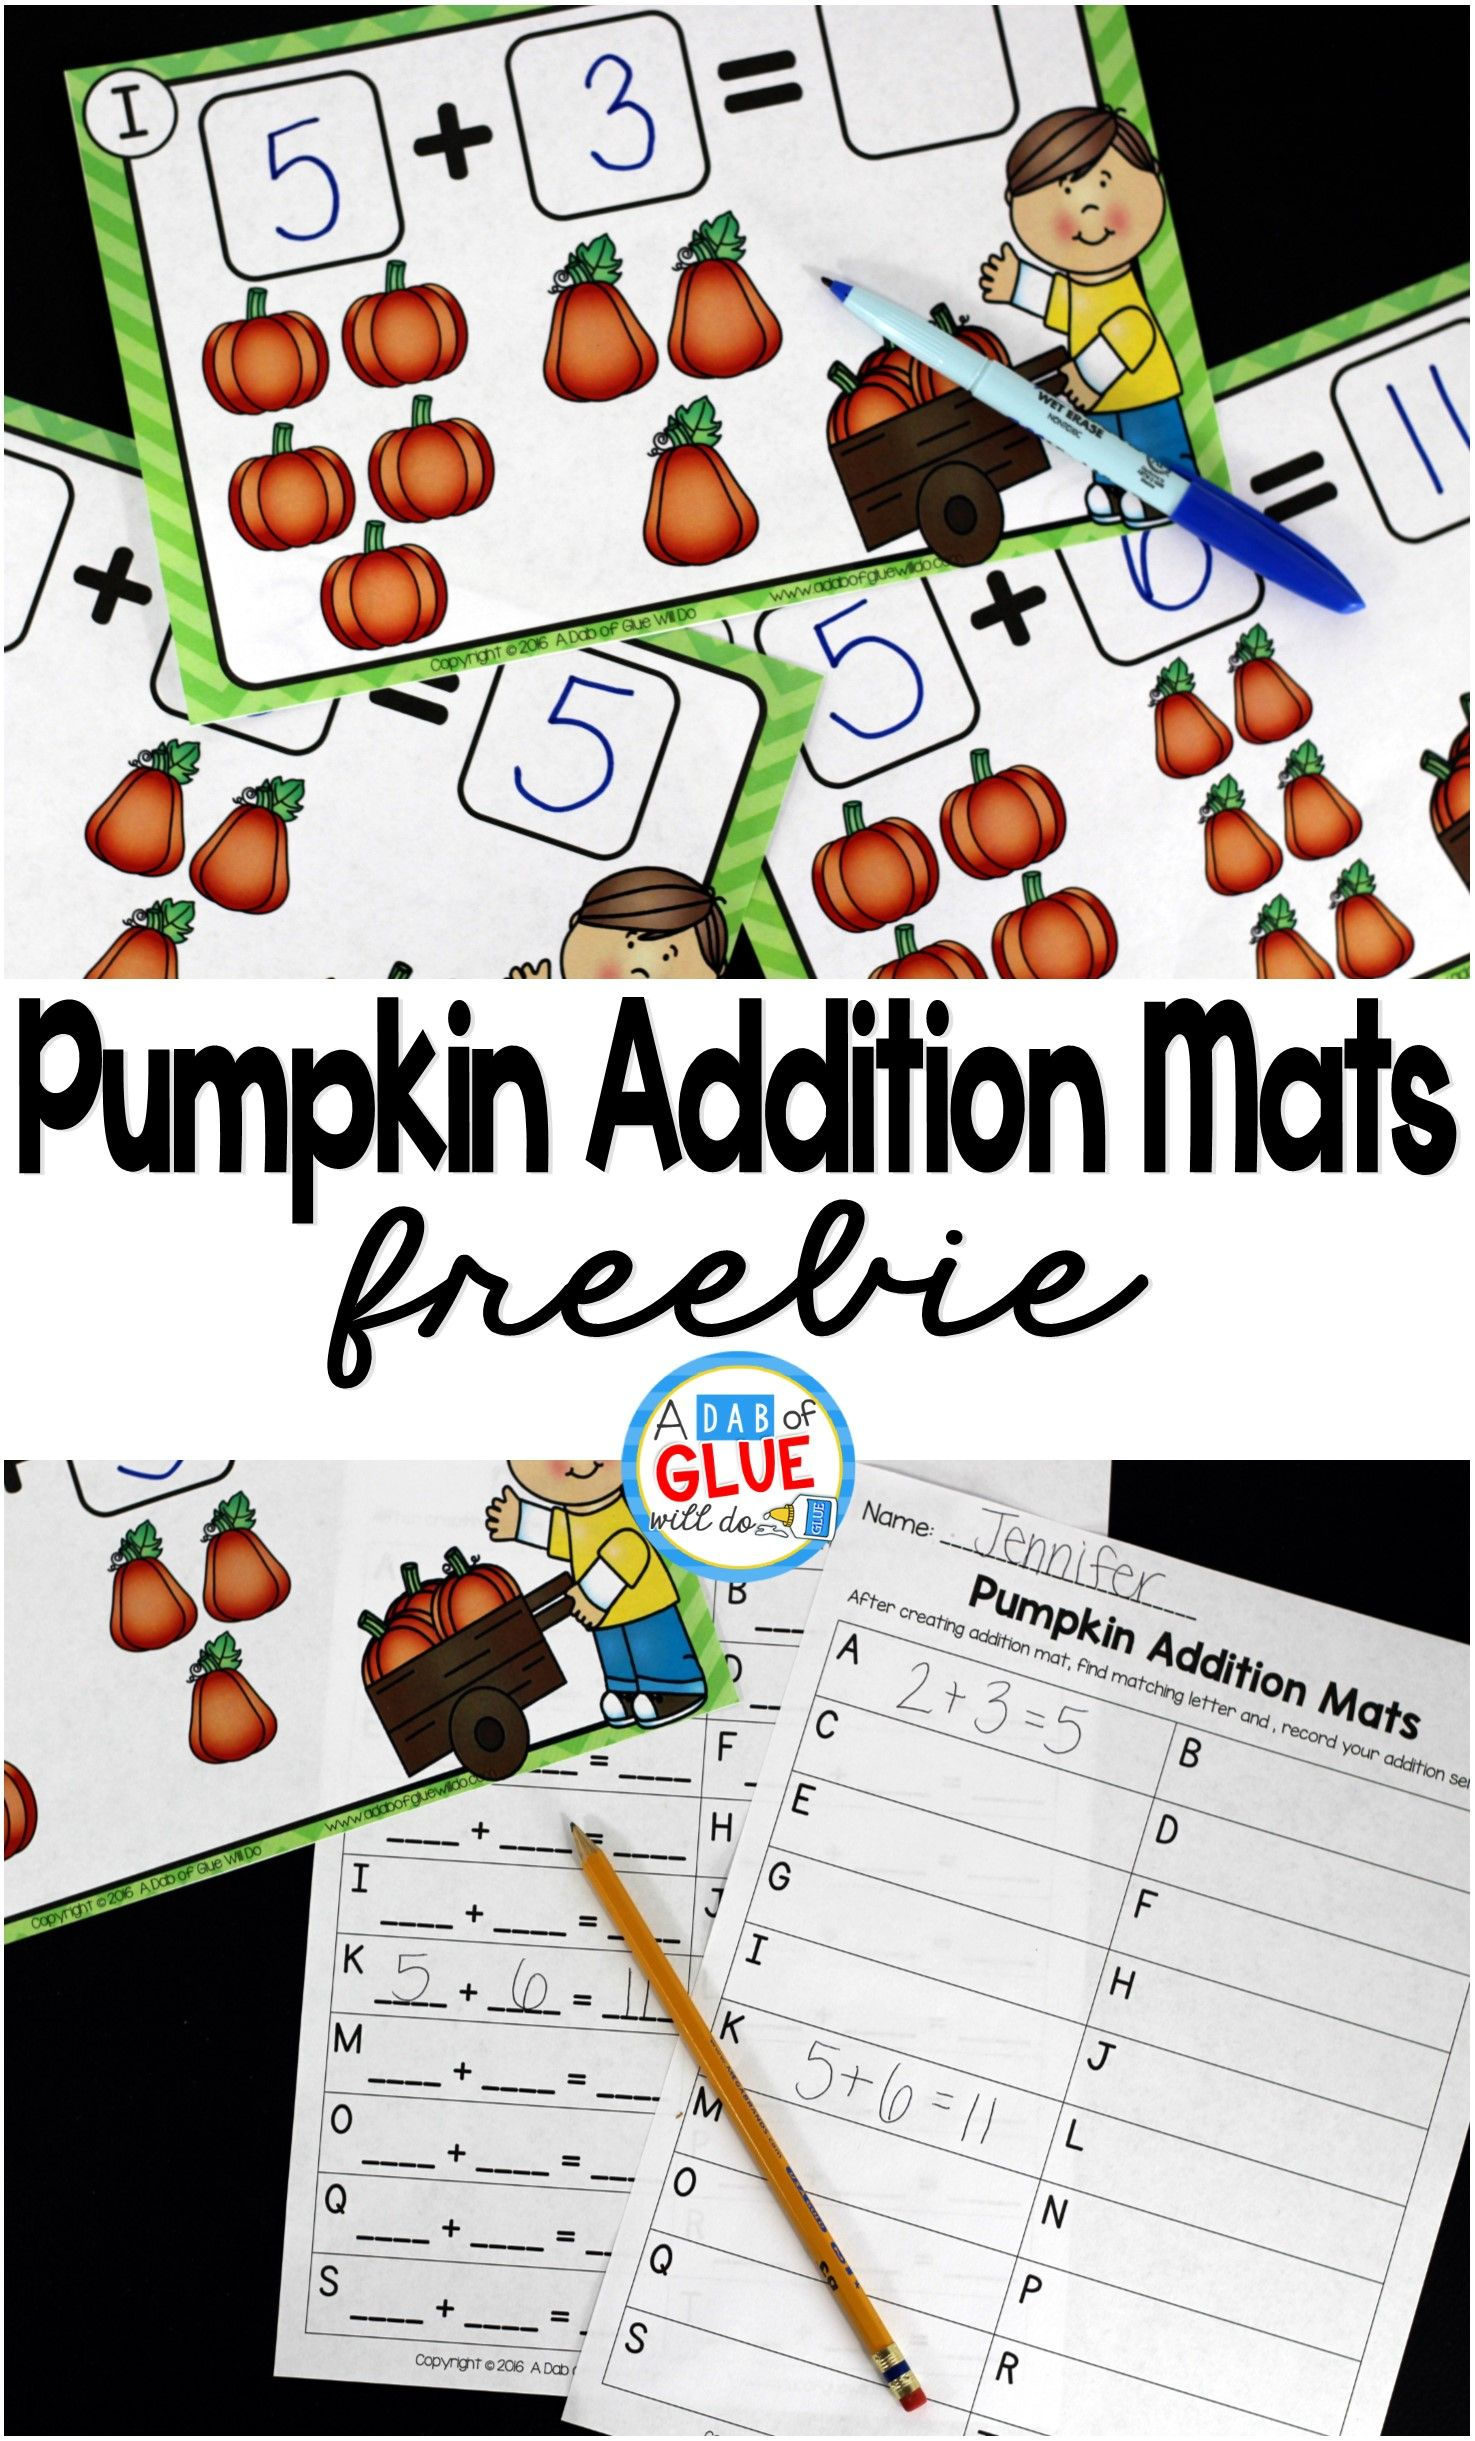 Pumpkin Addition Mats